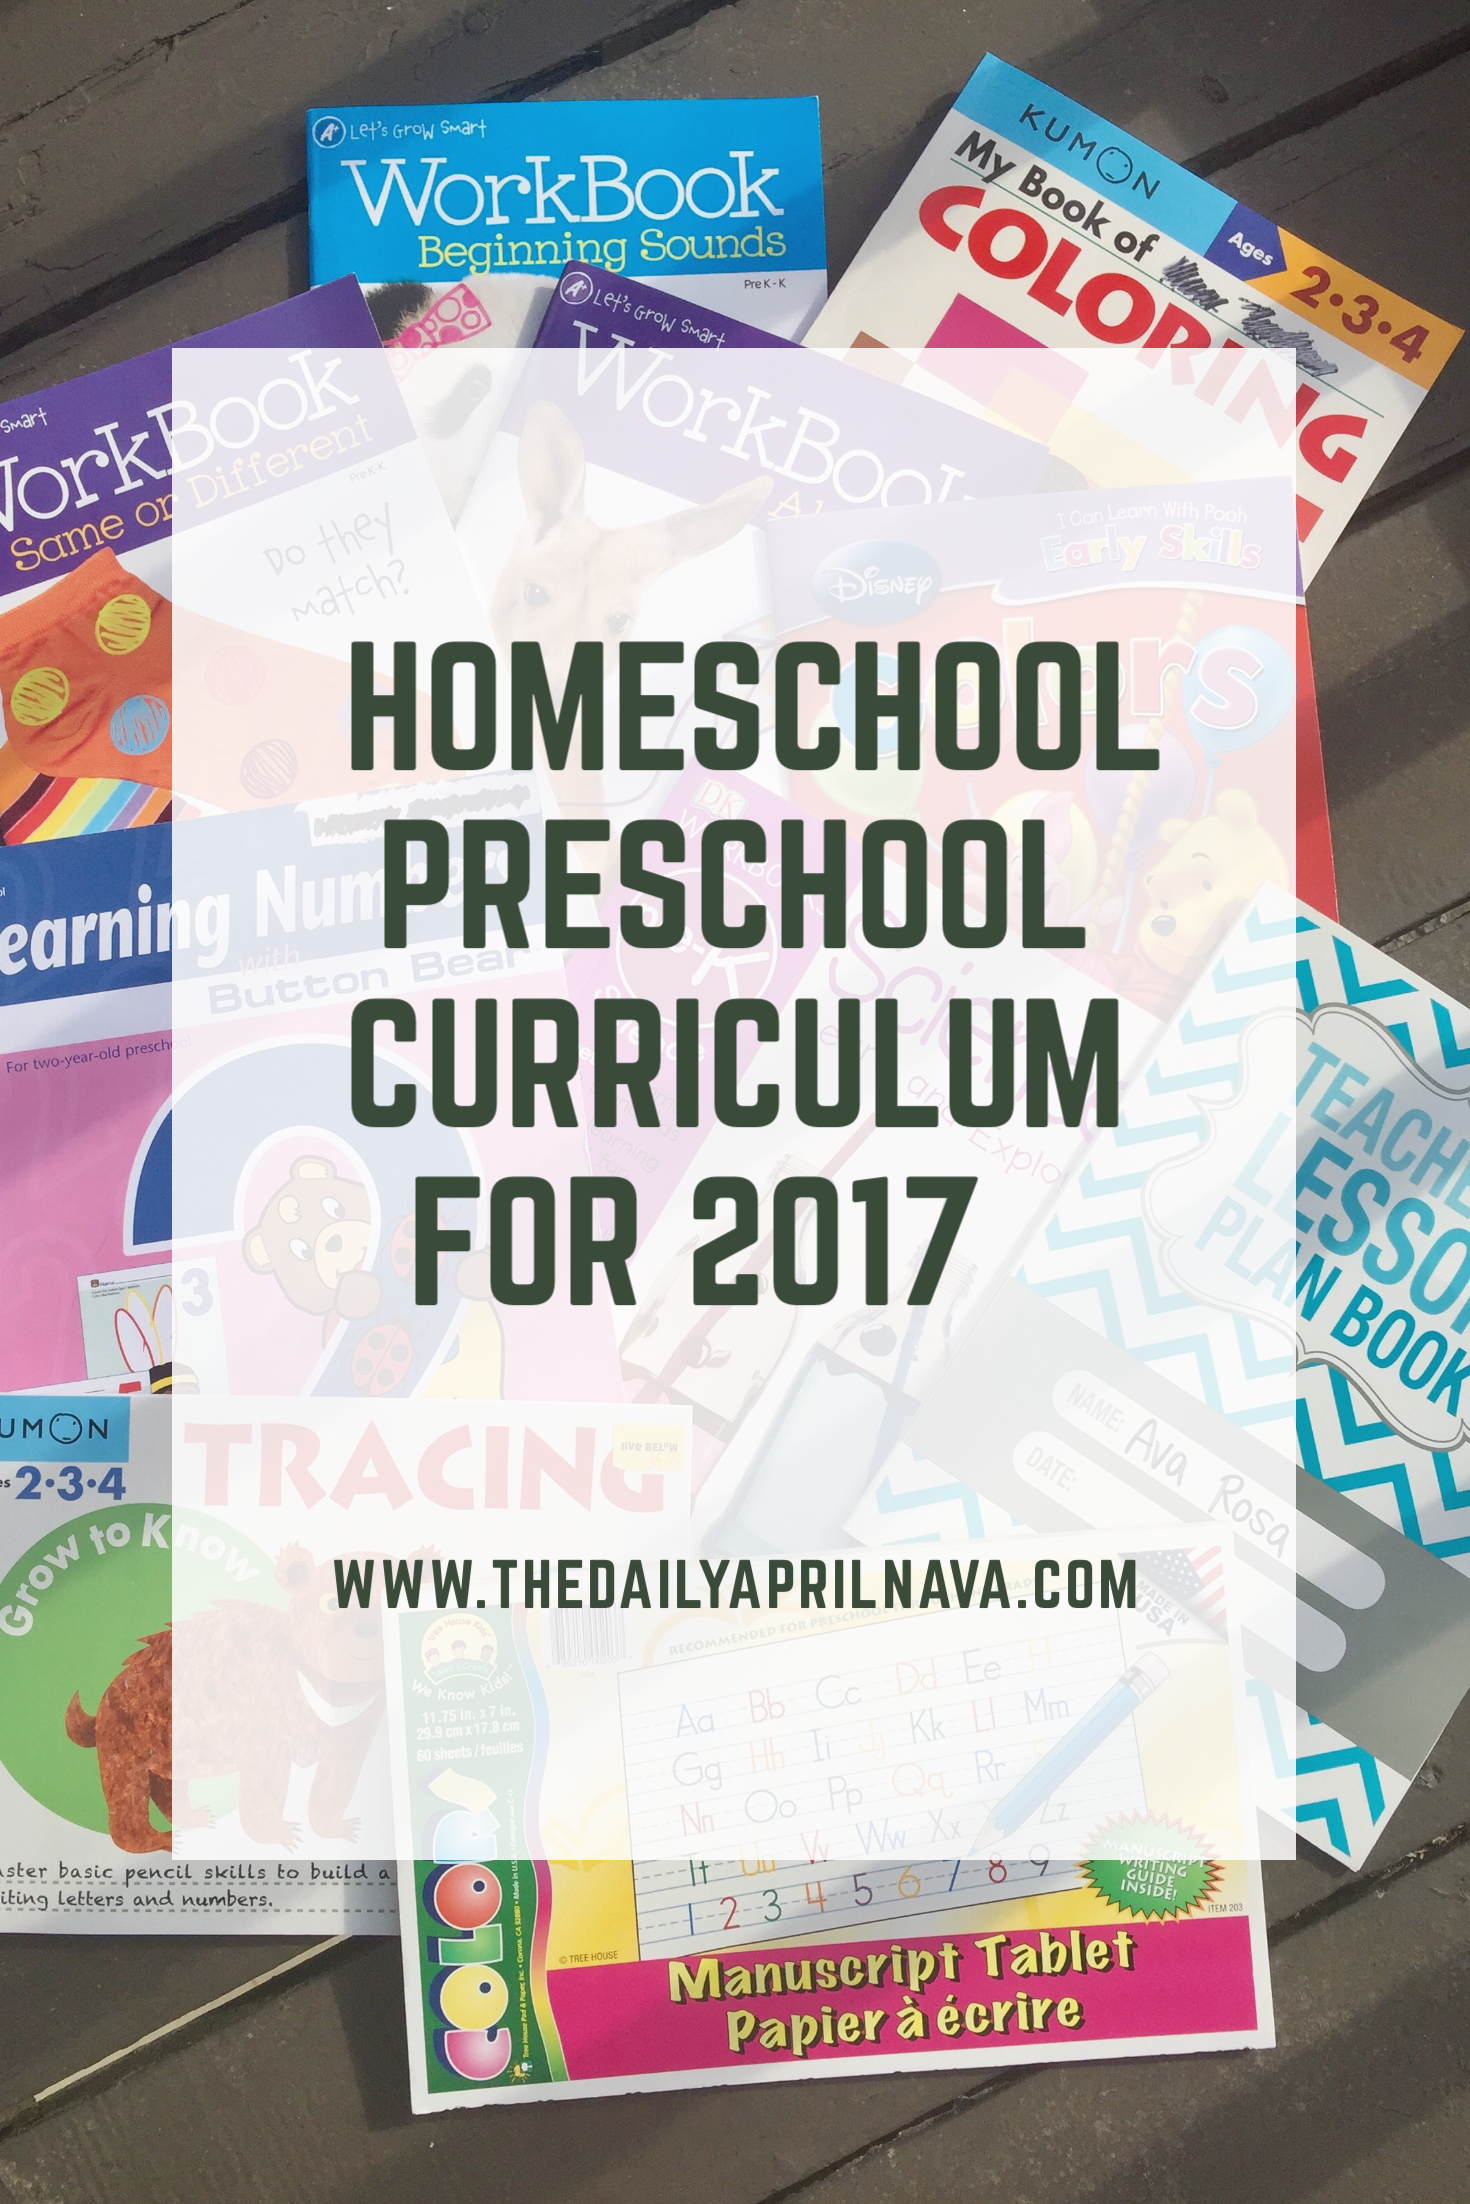 Homeschool Preschool Curriculum Choices For 2017 Low Cost Bud